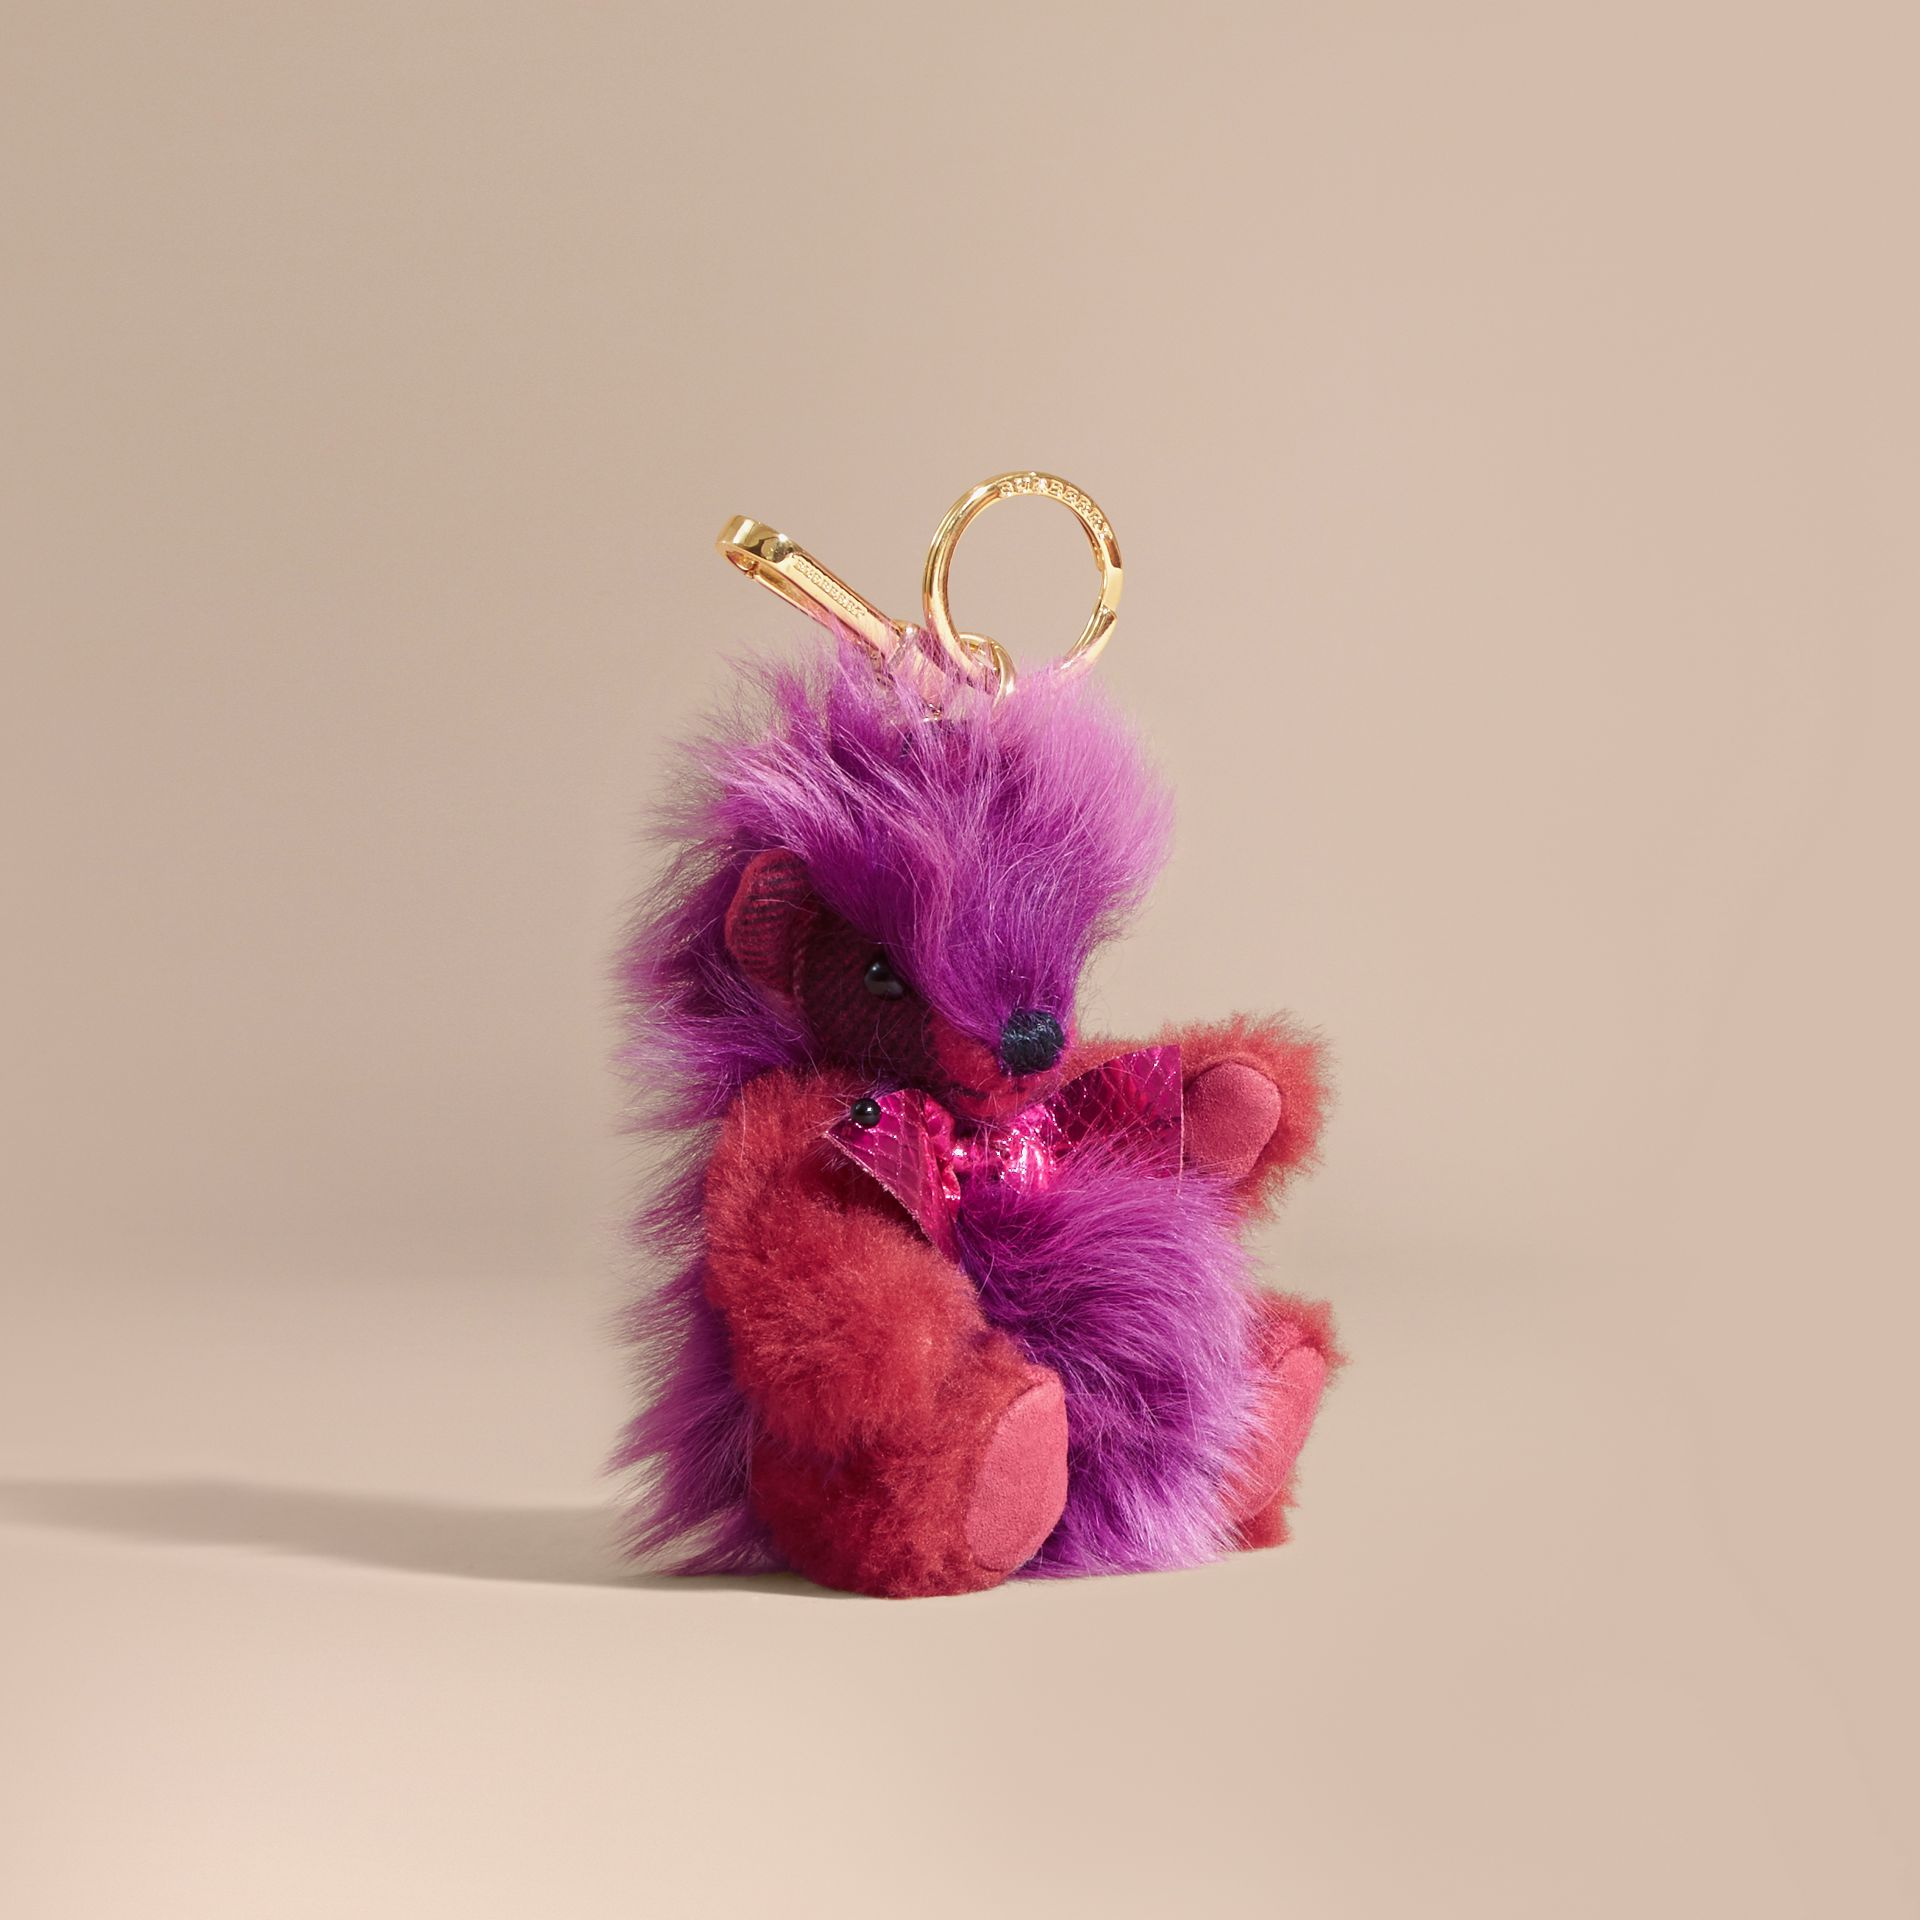 Thomas Bear Pom-Pom Charm in Check Cashmere in Fuchsia Pink - gallery image 1